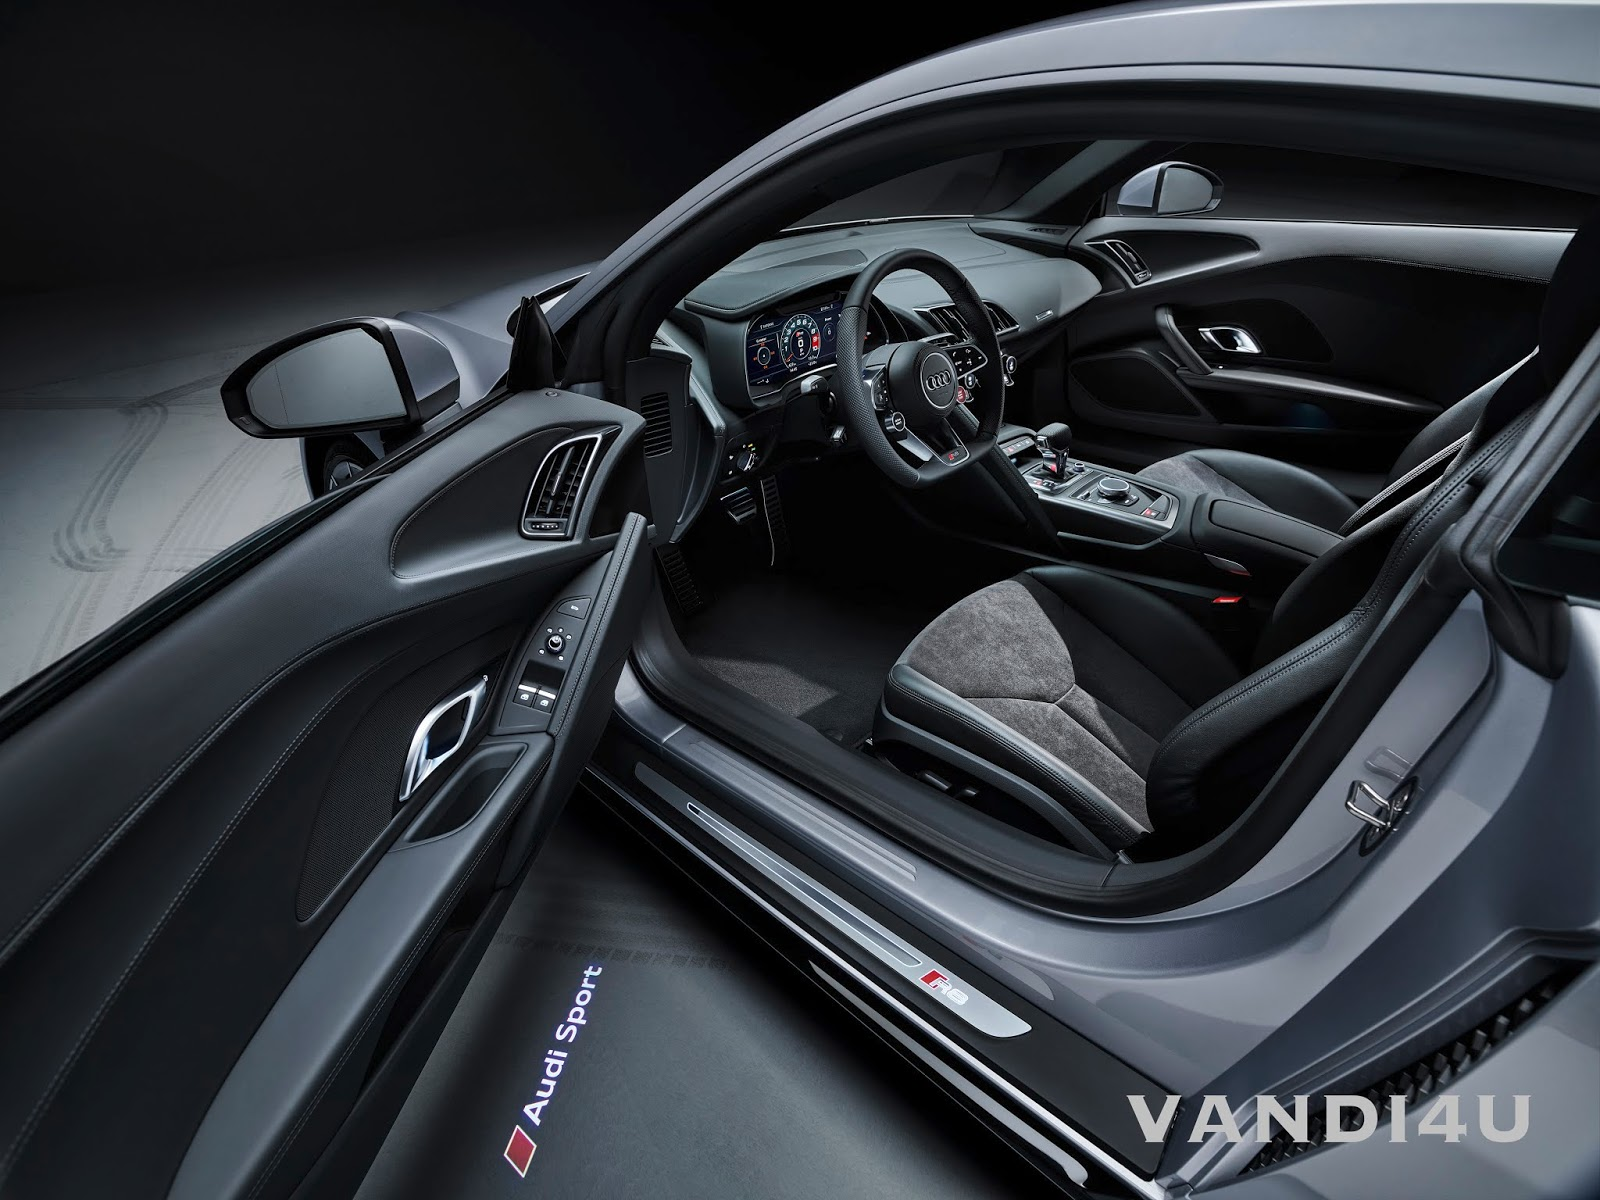 2020 Audi R8 V10 RWD Revealed: Top 5 things to know | VANDI4U